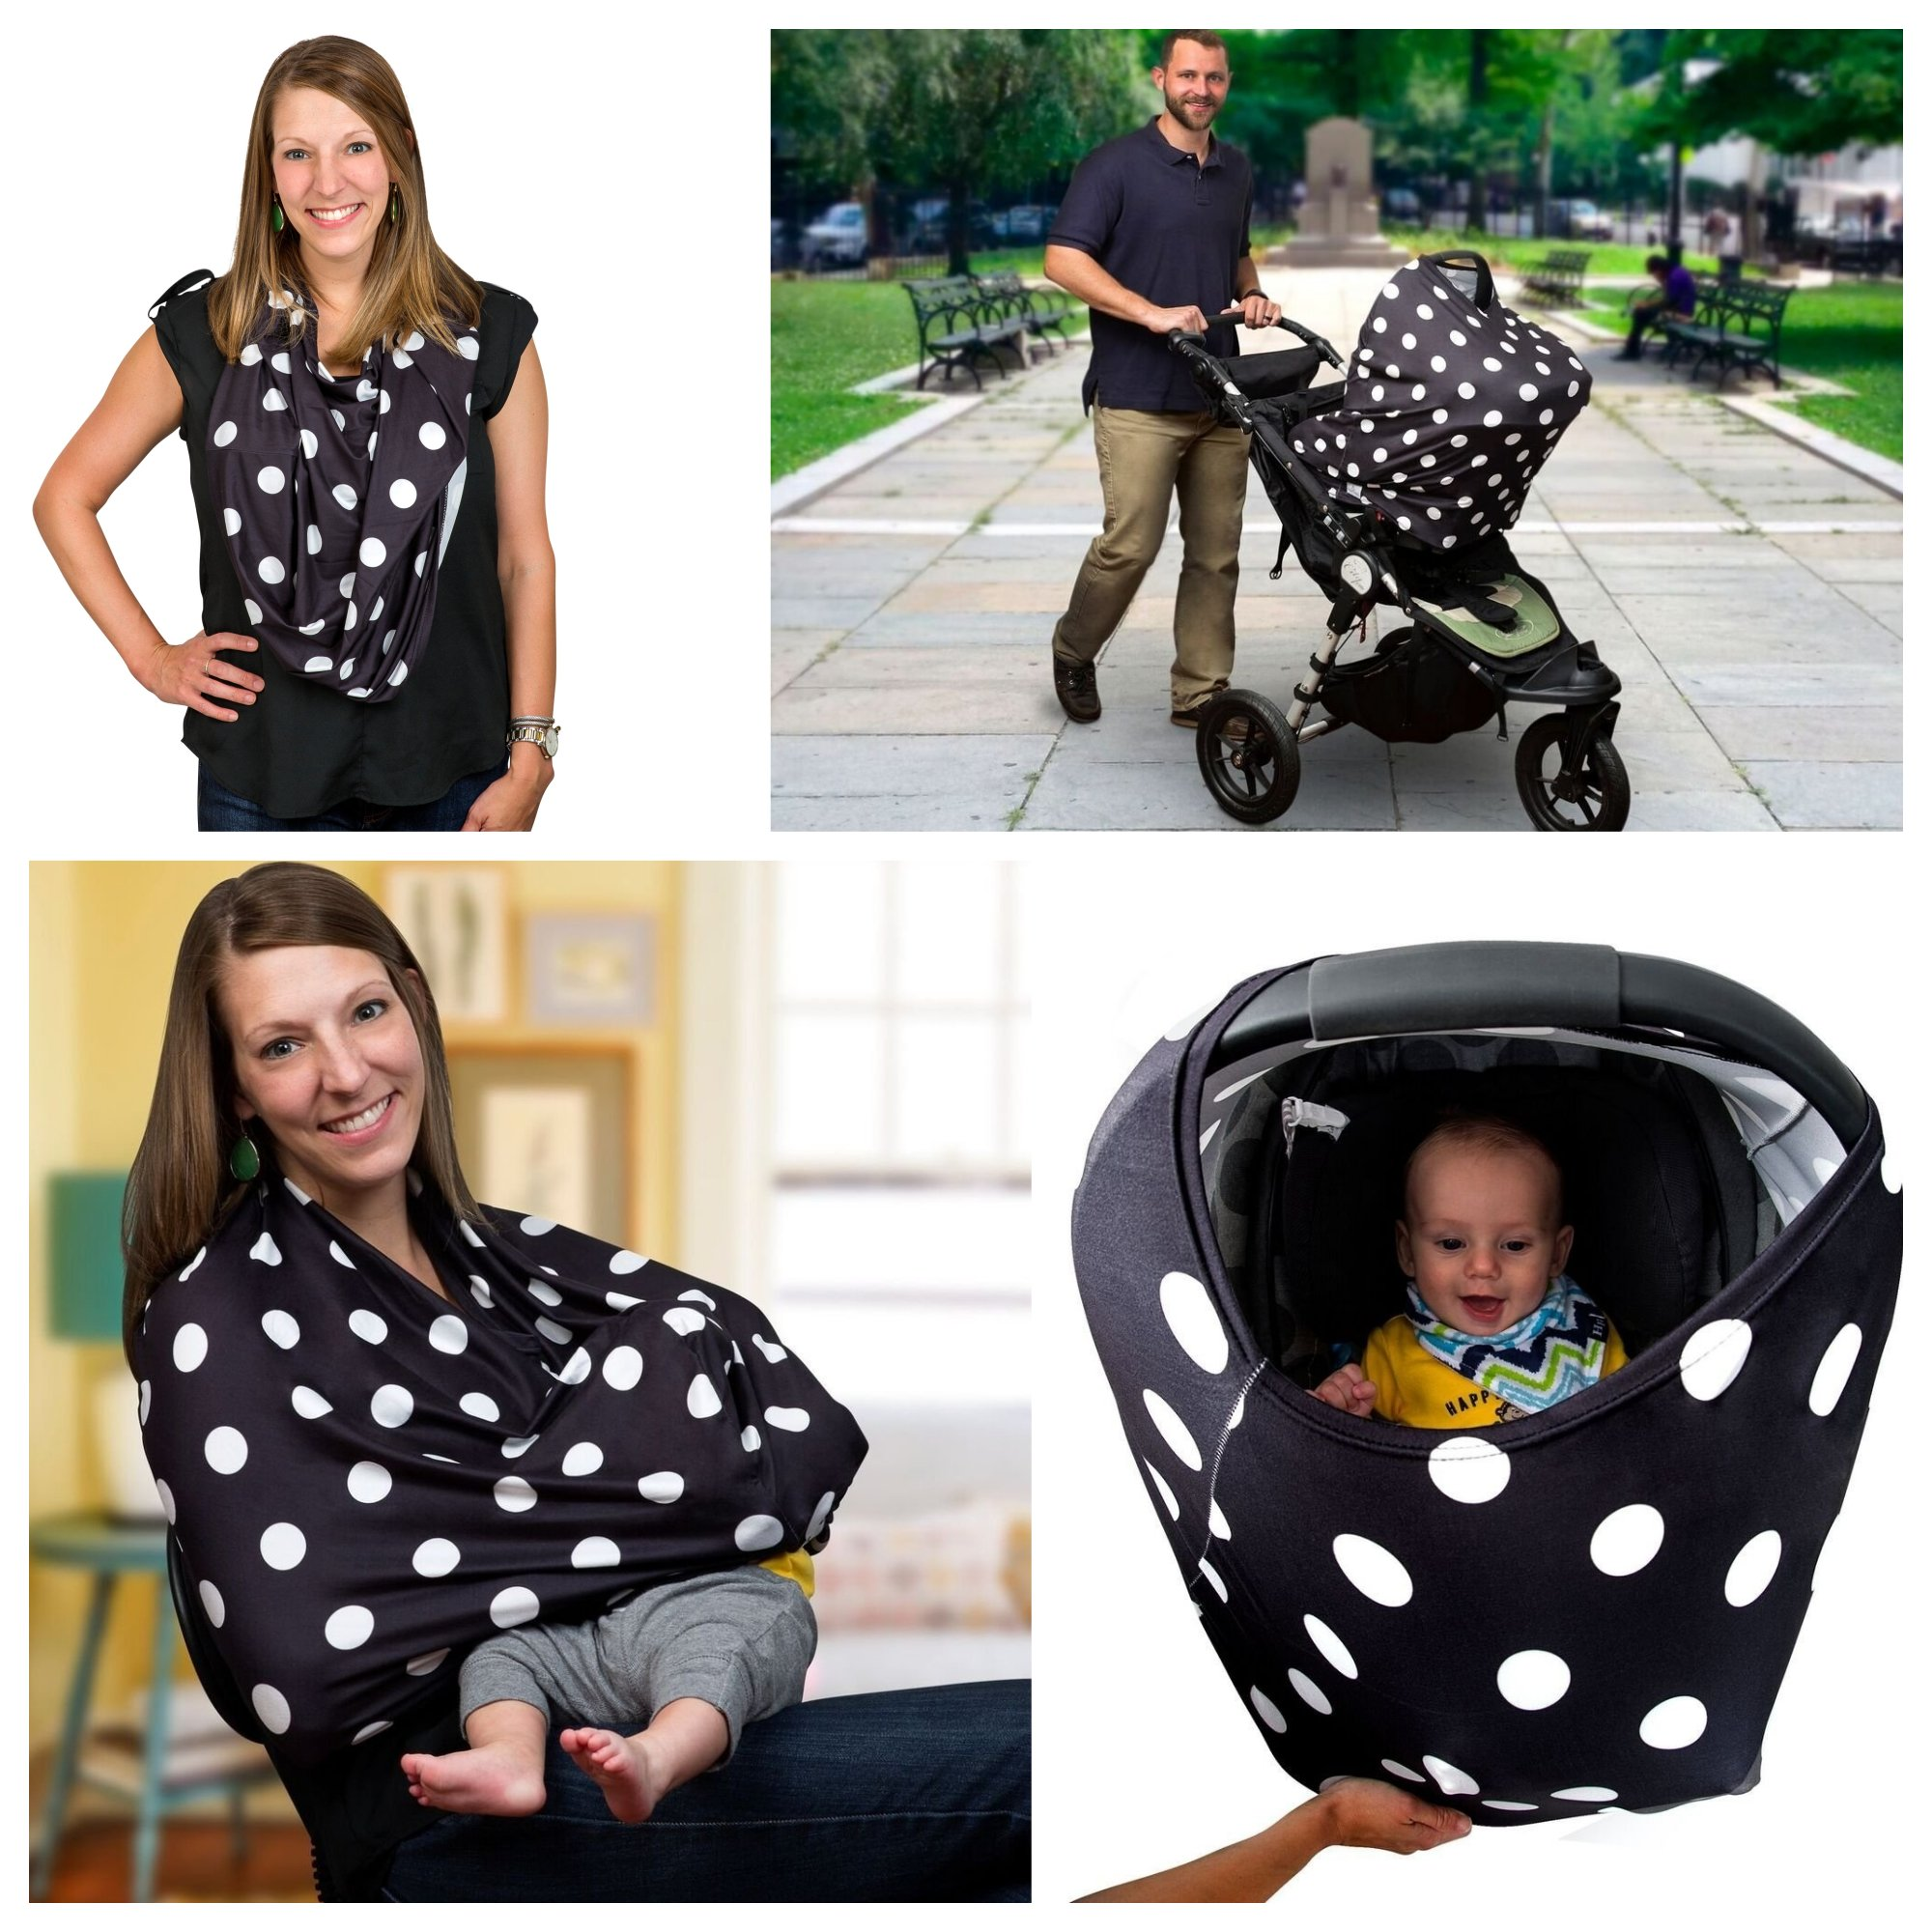 Best Baby Shower Gft Present- Multi-Use Nursing Breastfeeding Cover Scarf Canopy by Sprout'n Smiles for Boys and Girls; Baby Car Seat Cover, Shopping Cart and High Chair Cover